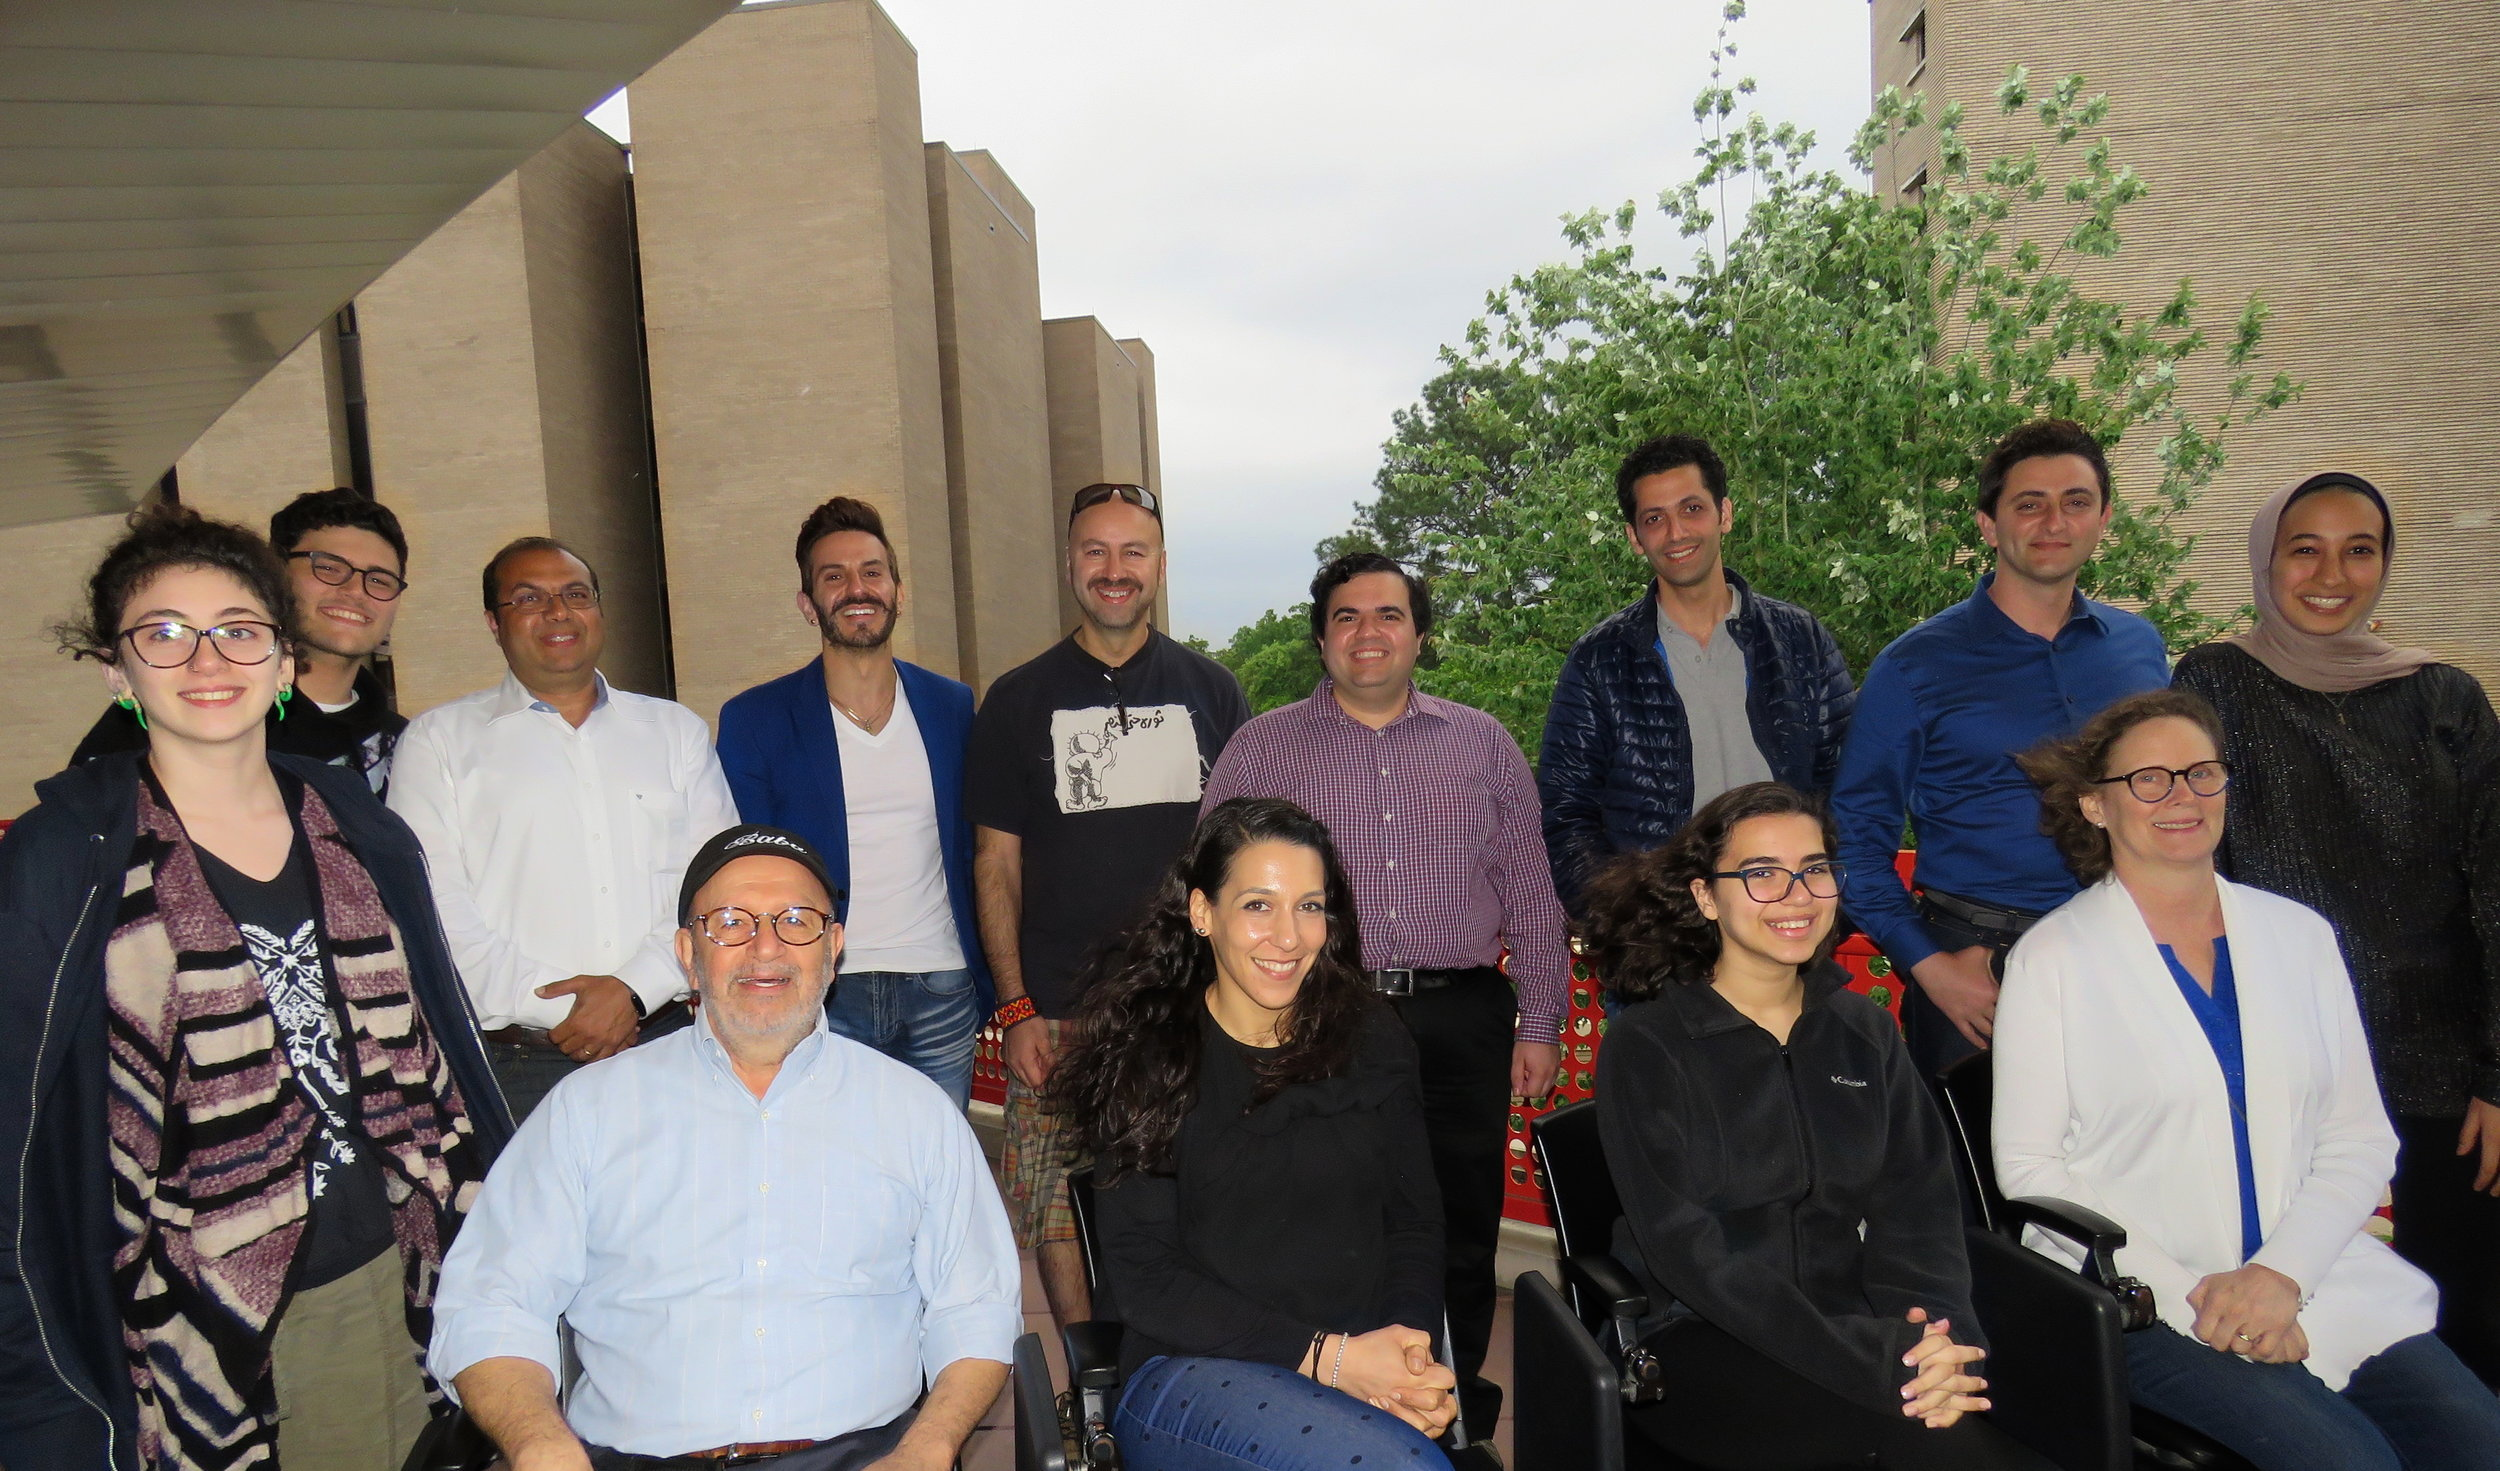 Palestinian Narrative Training - Houston, TXMarch 30-31, 2019Storytelling workshop led by Nadia Abuelezam held in collaboration with FOSNA with 16 attendees.